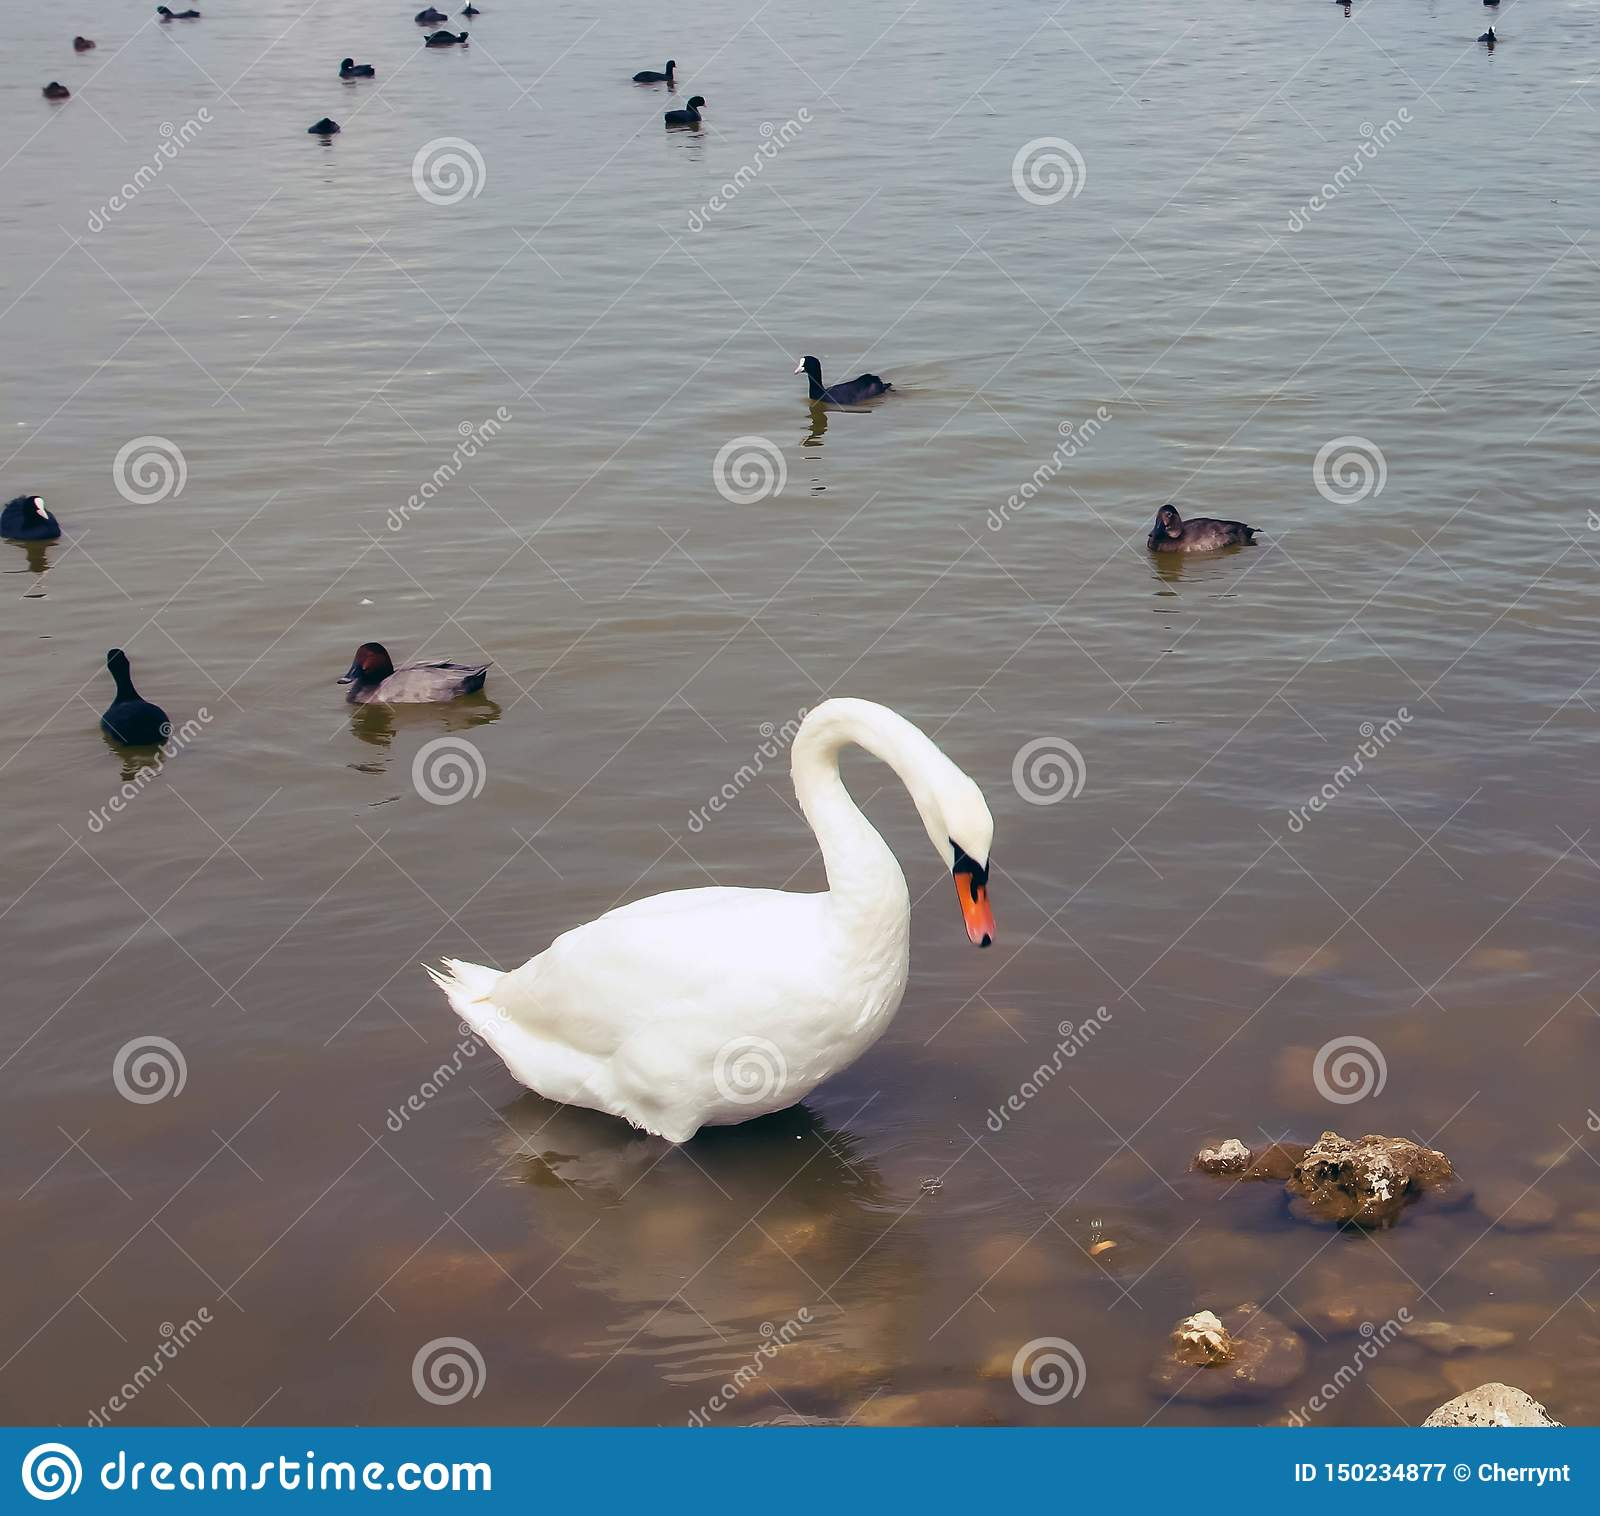 A large white swan on the water, with little black swans